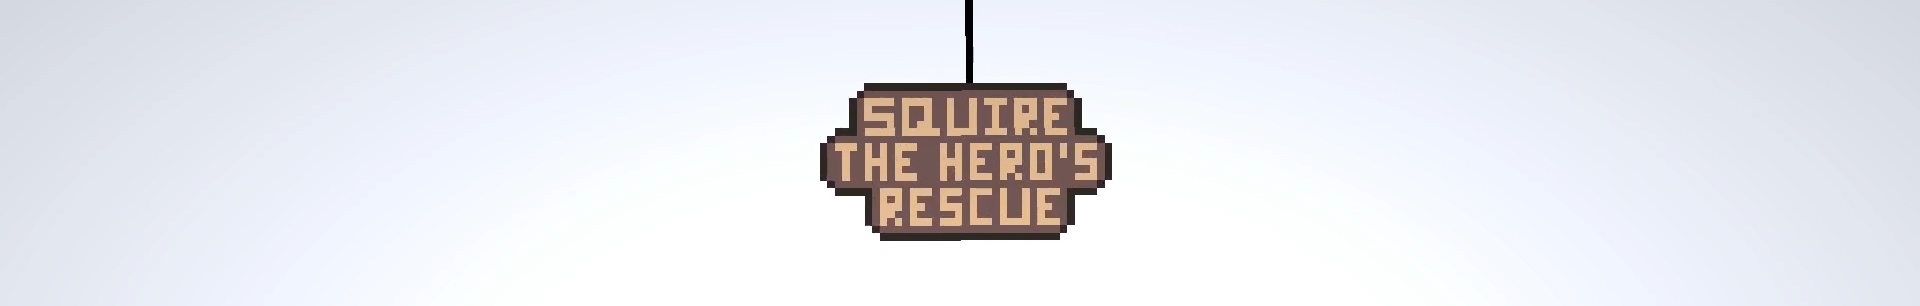 Squire, The Hero's Rescue